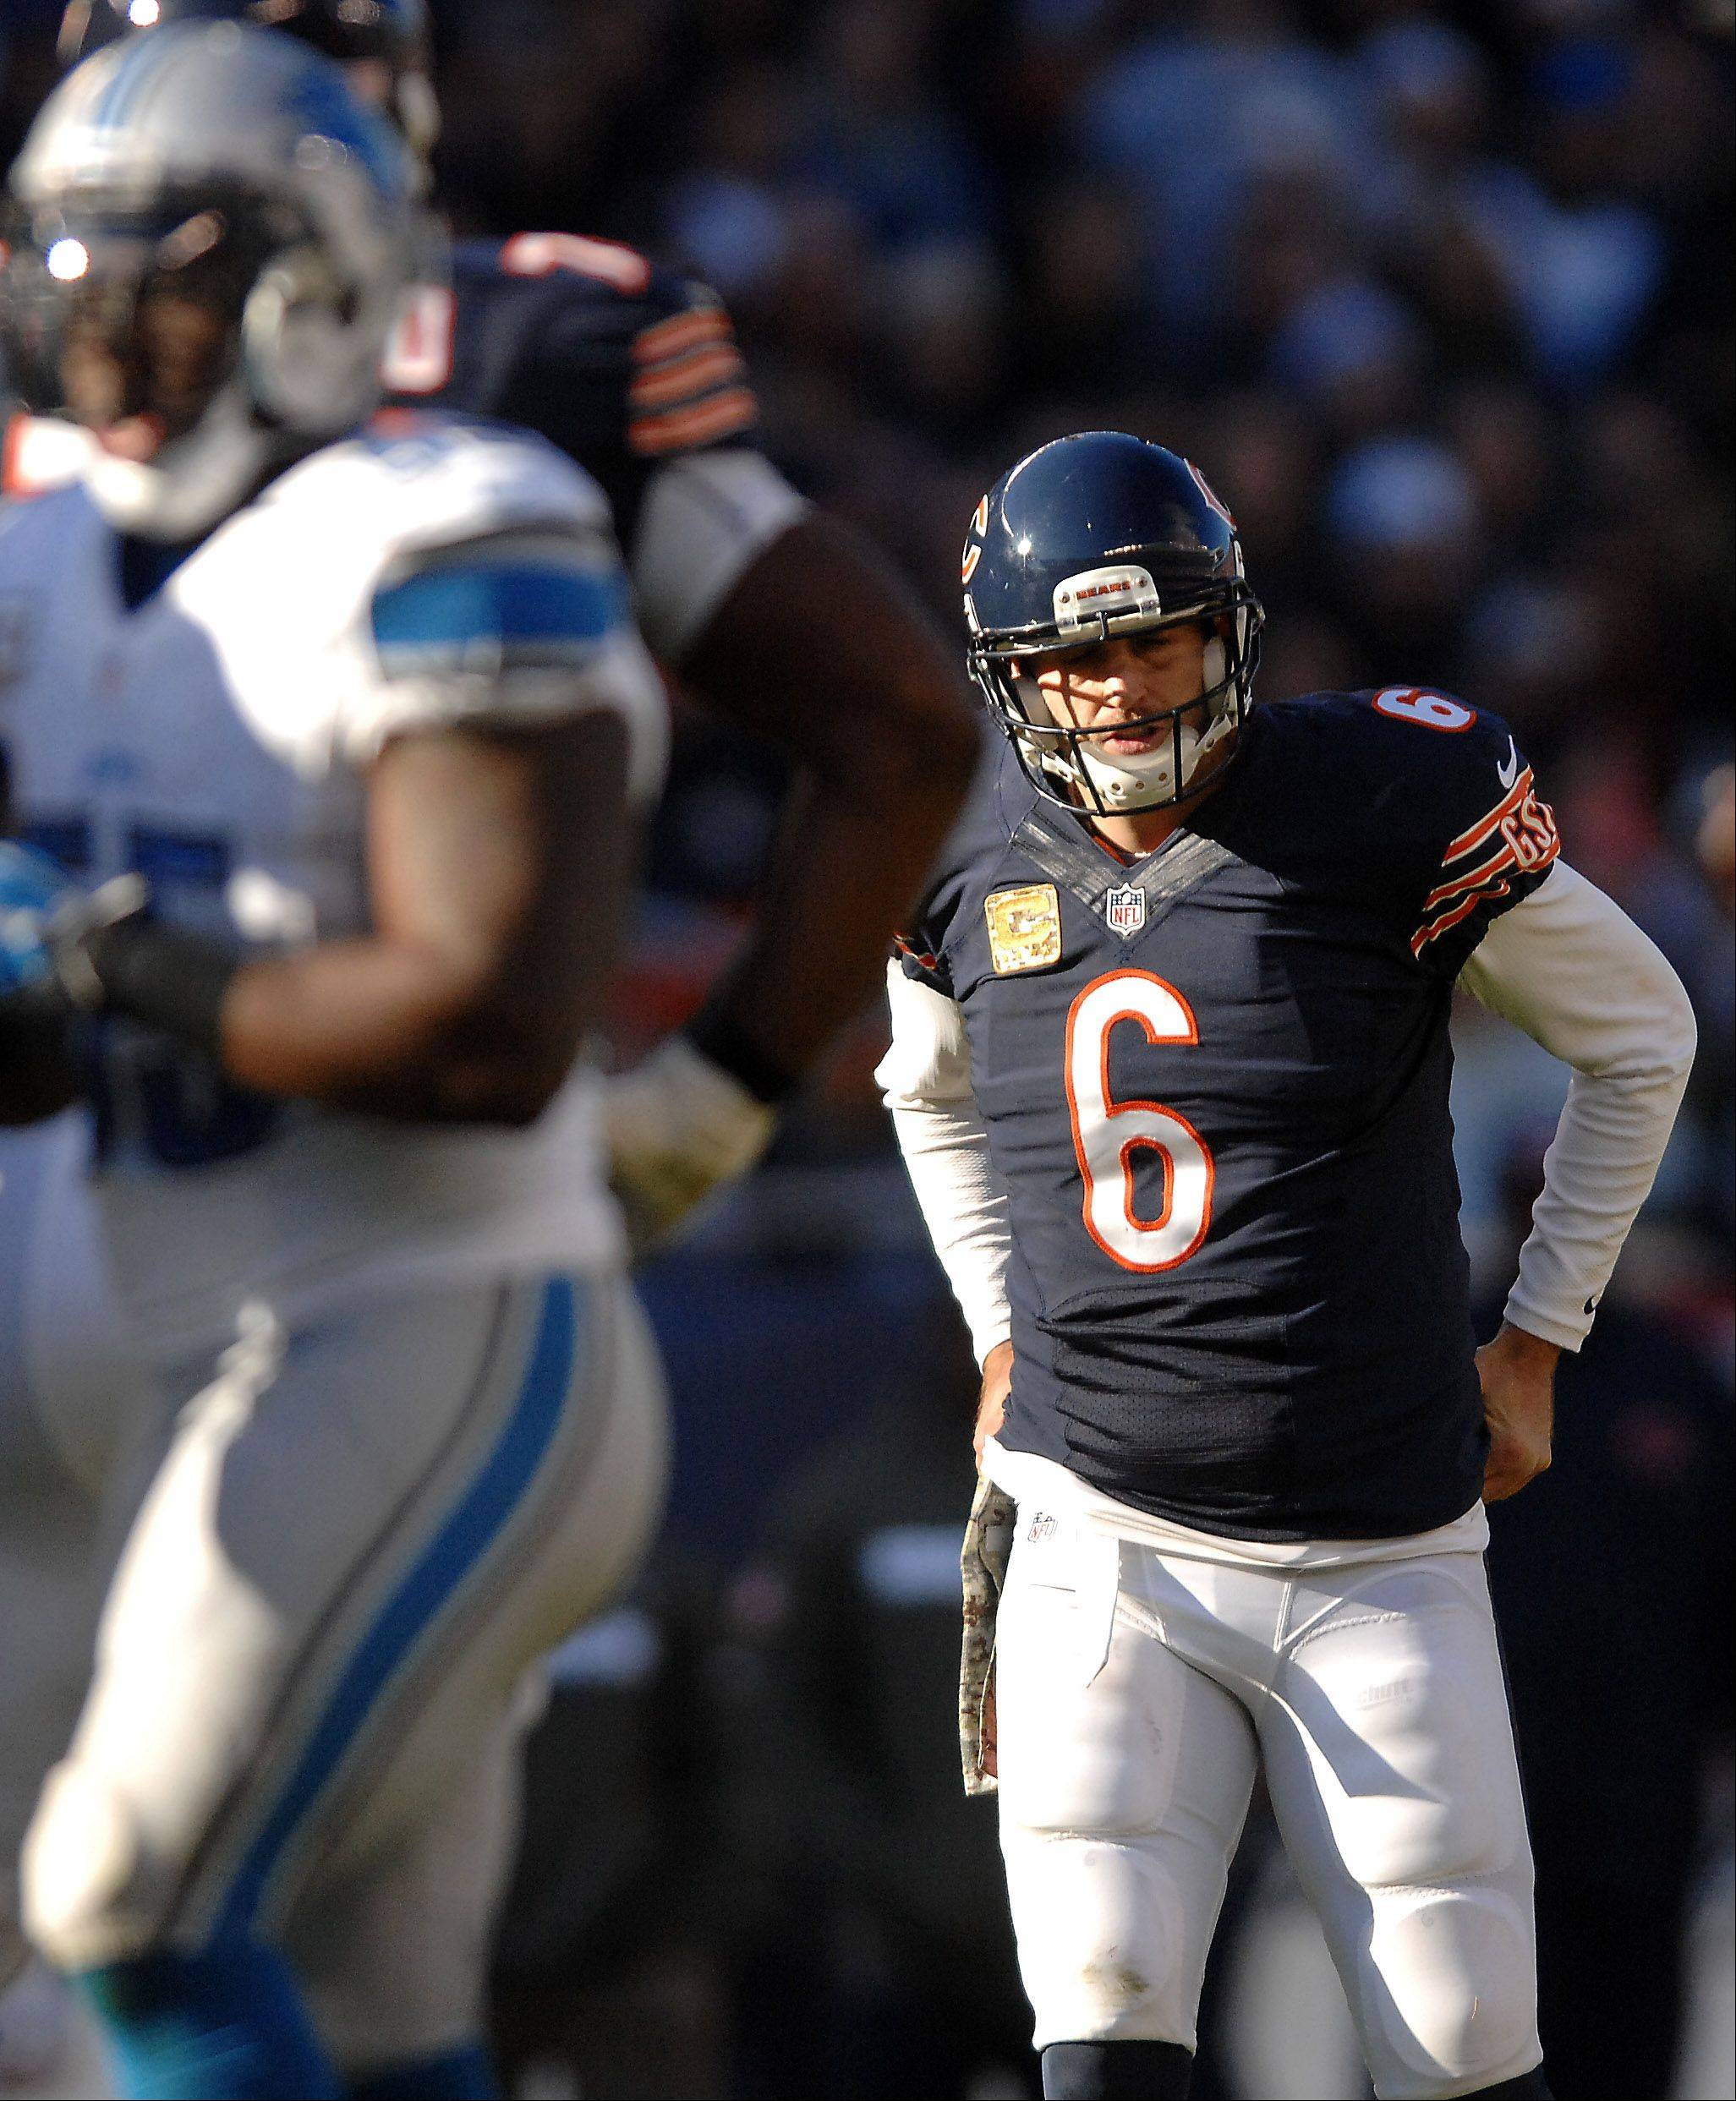 Jay Cutler (6) gets up slowly after a third quarter play during Sunday's game in Chicago.